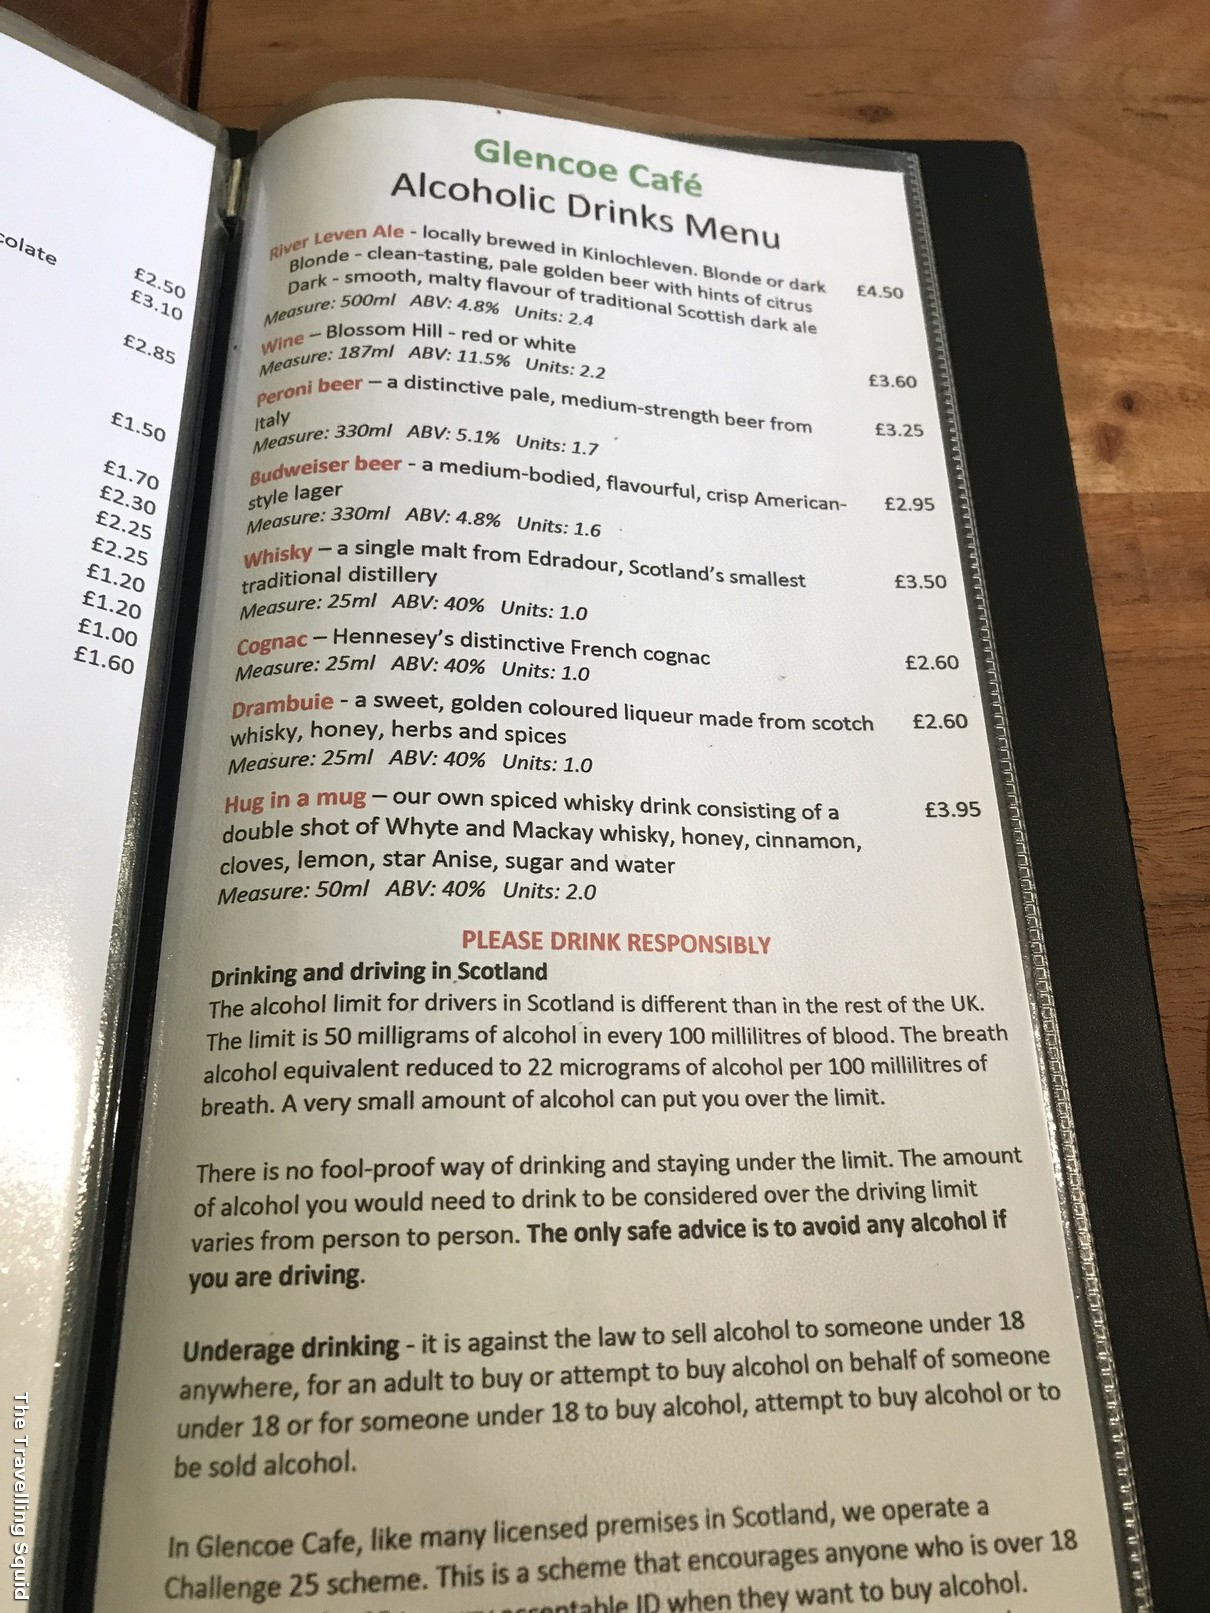 glencoe cafe menu